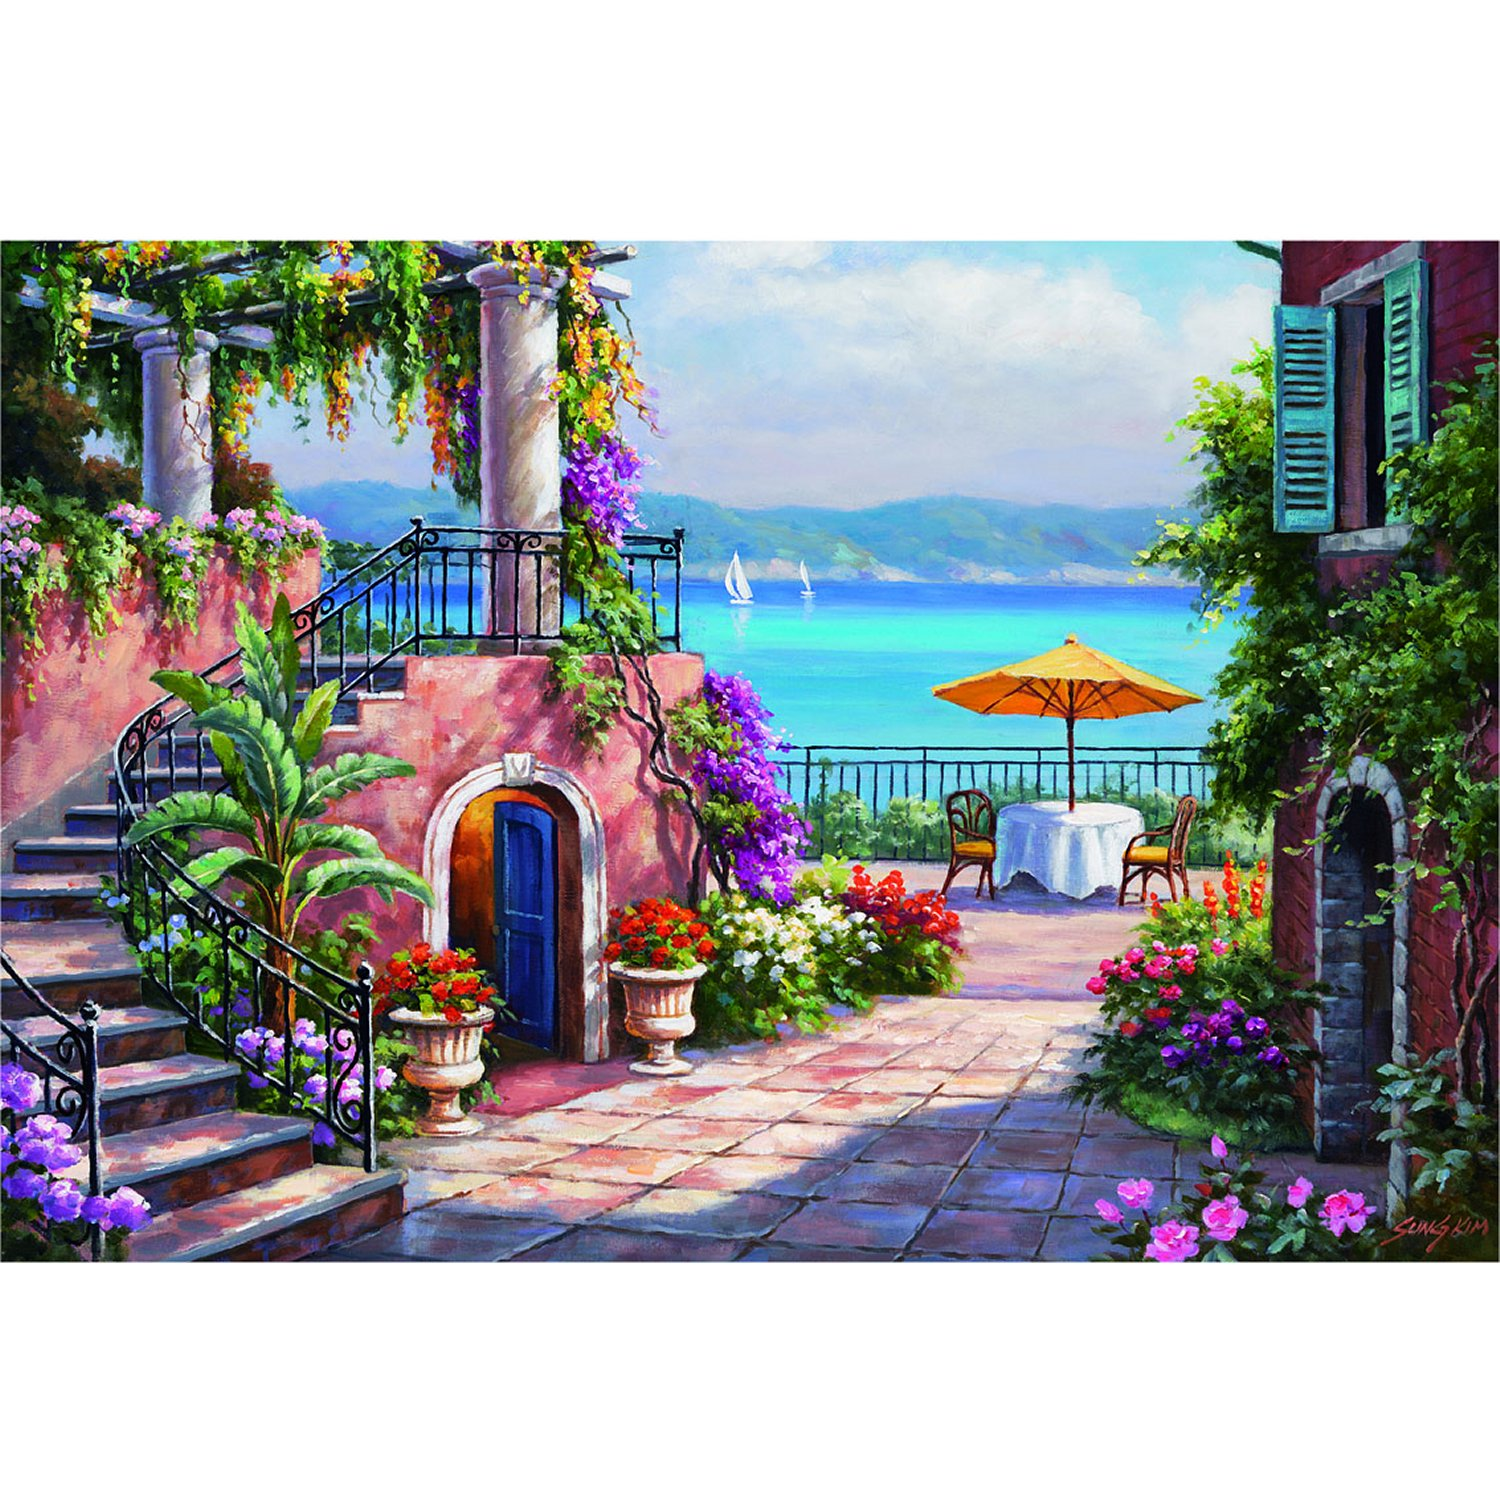 jigsaw puzzle 3000 pieces sung kim tuscan terrace educa 14823 3000 pieces jigsaw puzzles. Black Bedroom Furniture Sets. Home Design Ideas